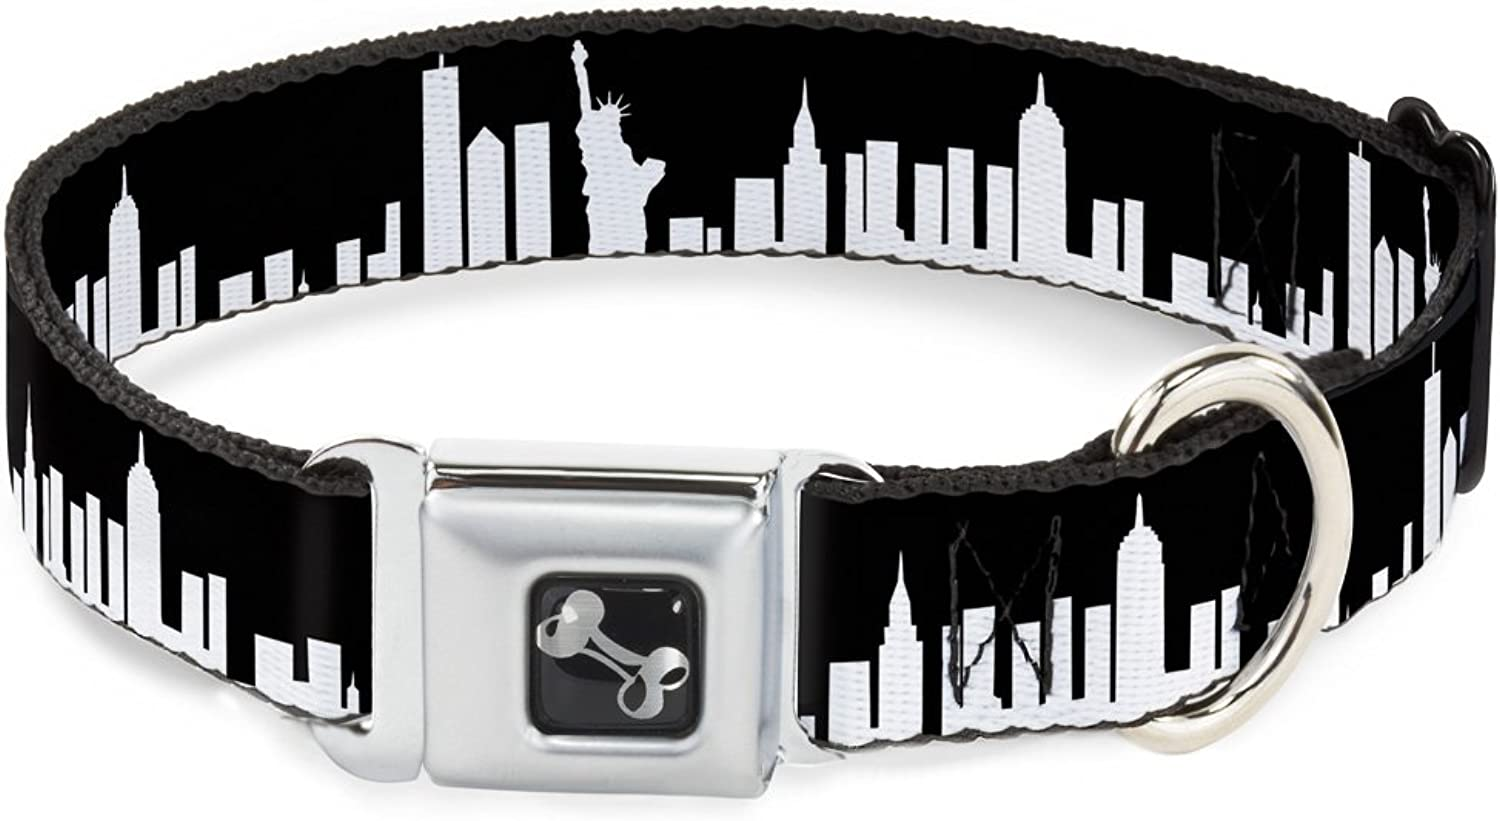 BuckleDown DCW31443L Dog Collar Seatbelt, New York Solid Skyline Black White, 1  x 1526